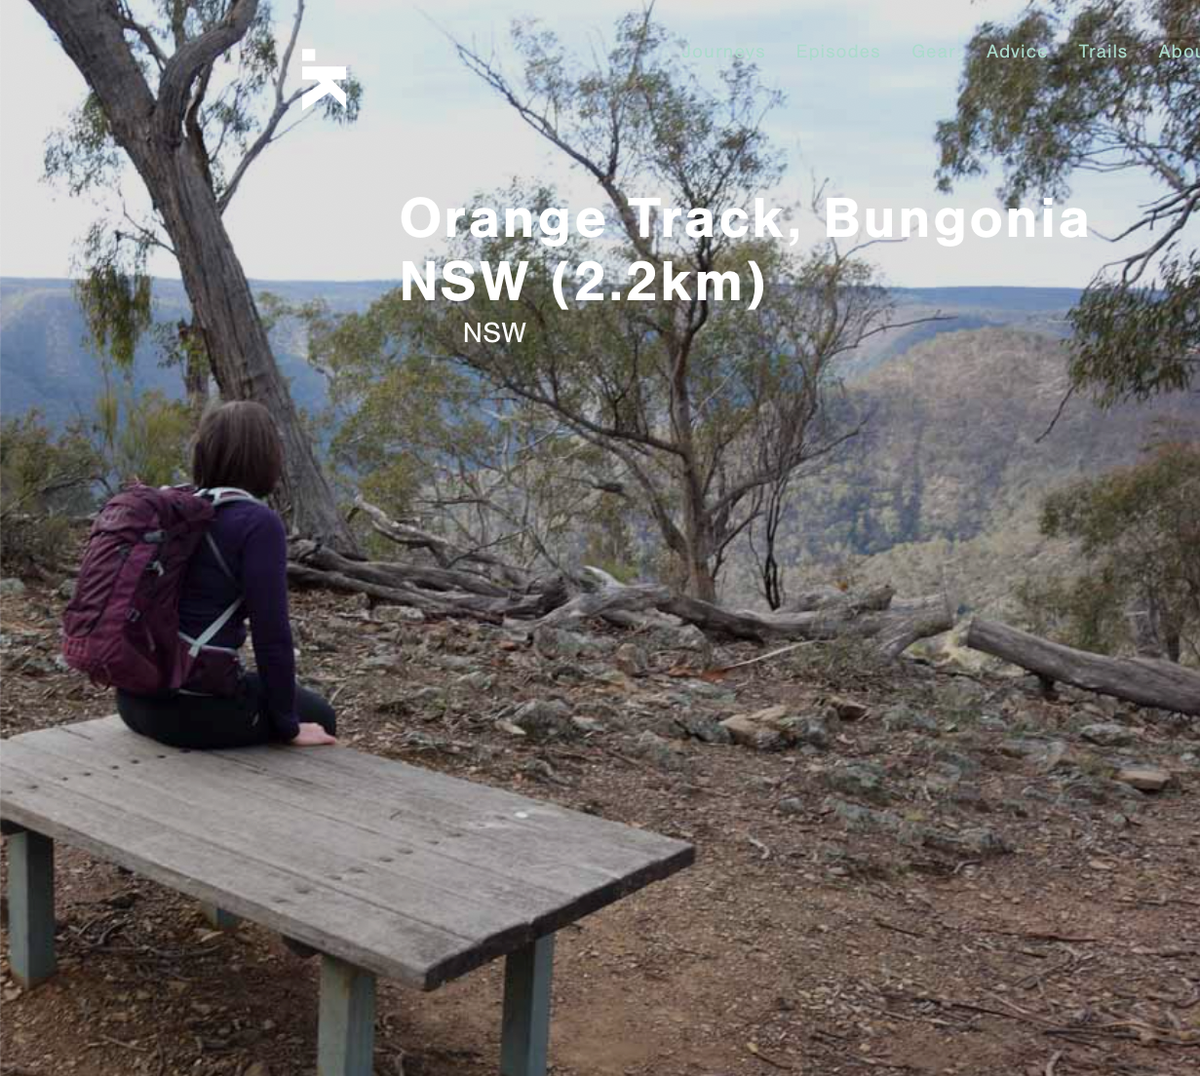 The Orange Track in Bungonia National Park is a relatively short track, easily accessible to just about any hiker as well as being the easiest of the designated tracks in this park. For more information see our review at https://soo.nr/lTdq  #australianhiker #bungonia #hikingpic.twitter.com/cZtCbdU1in